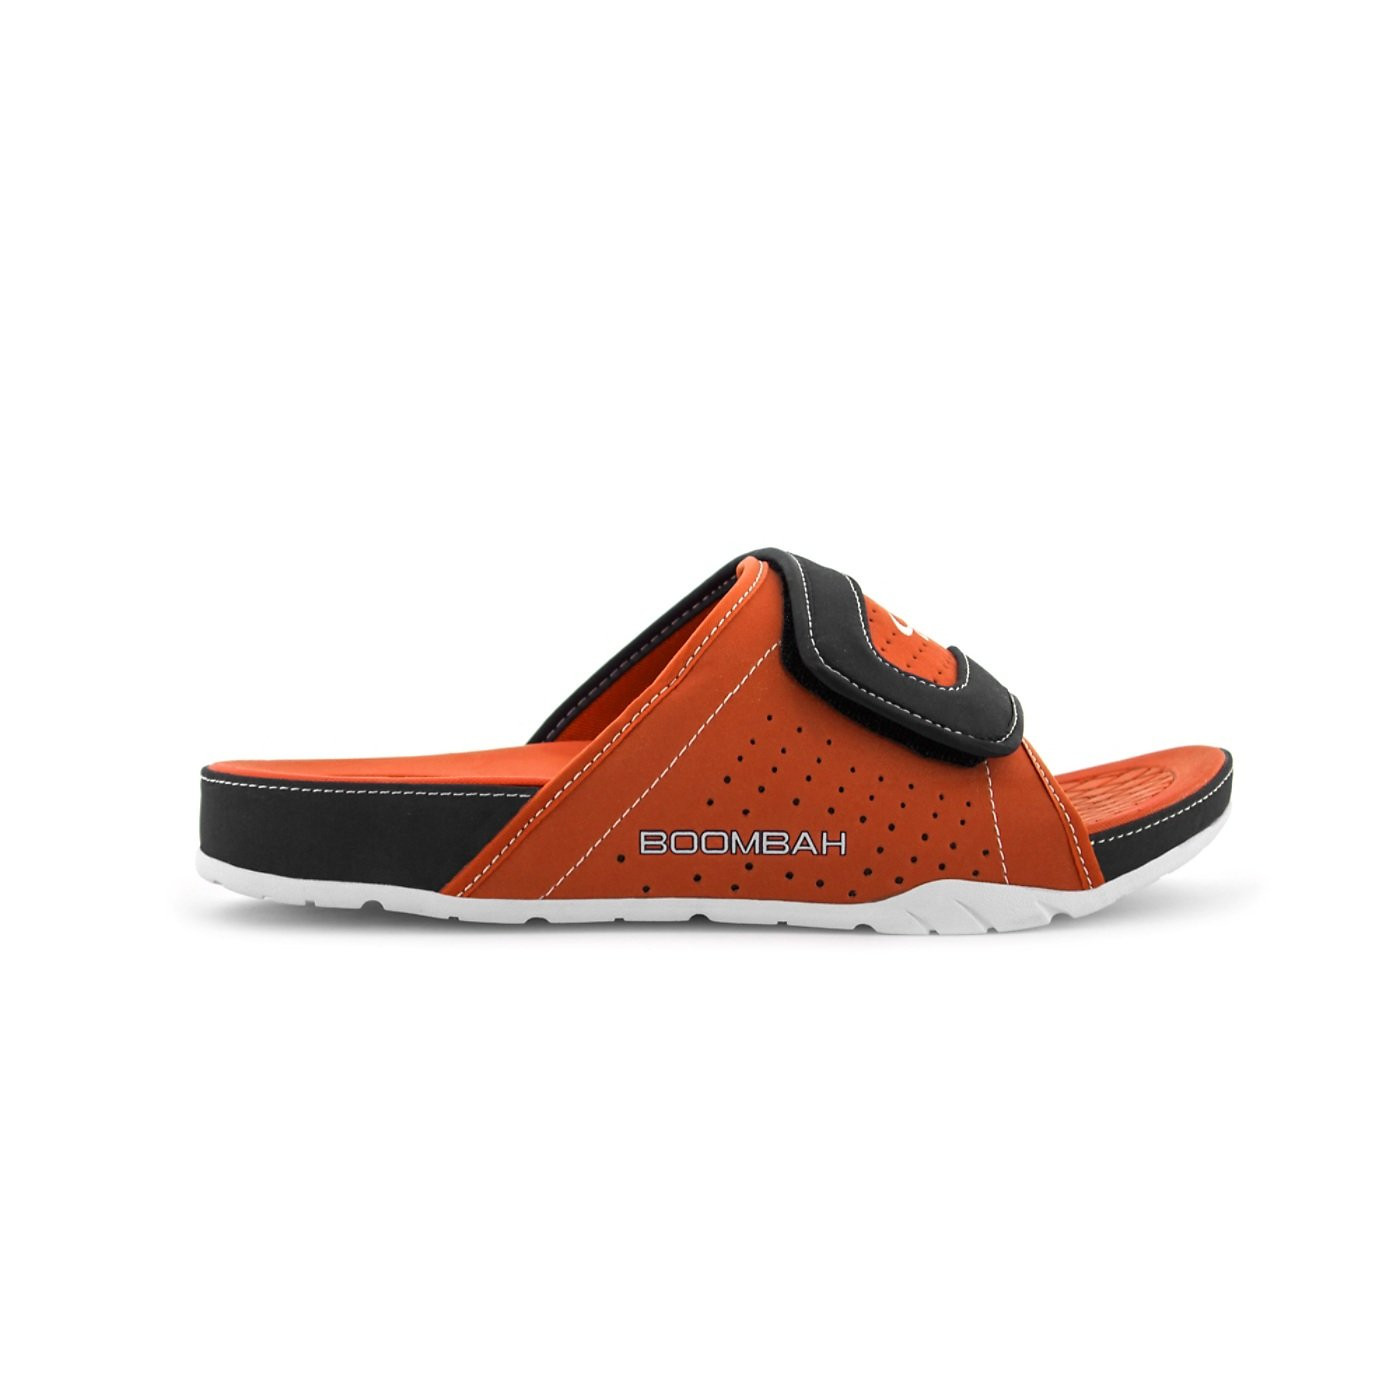 Boombah Men's Tyrant Slide Sandals - 32 Color Options - Multiple Sizes B077NKNXPQ 15|Orange/Black